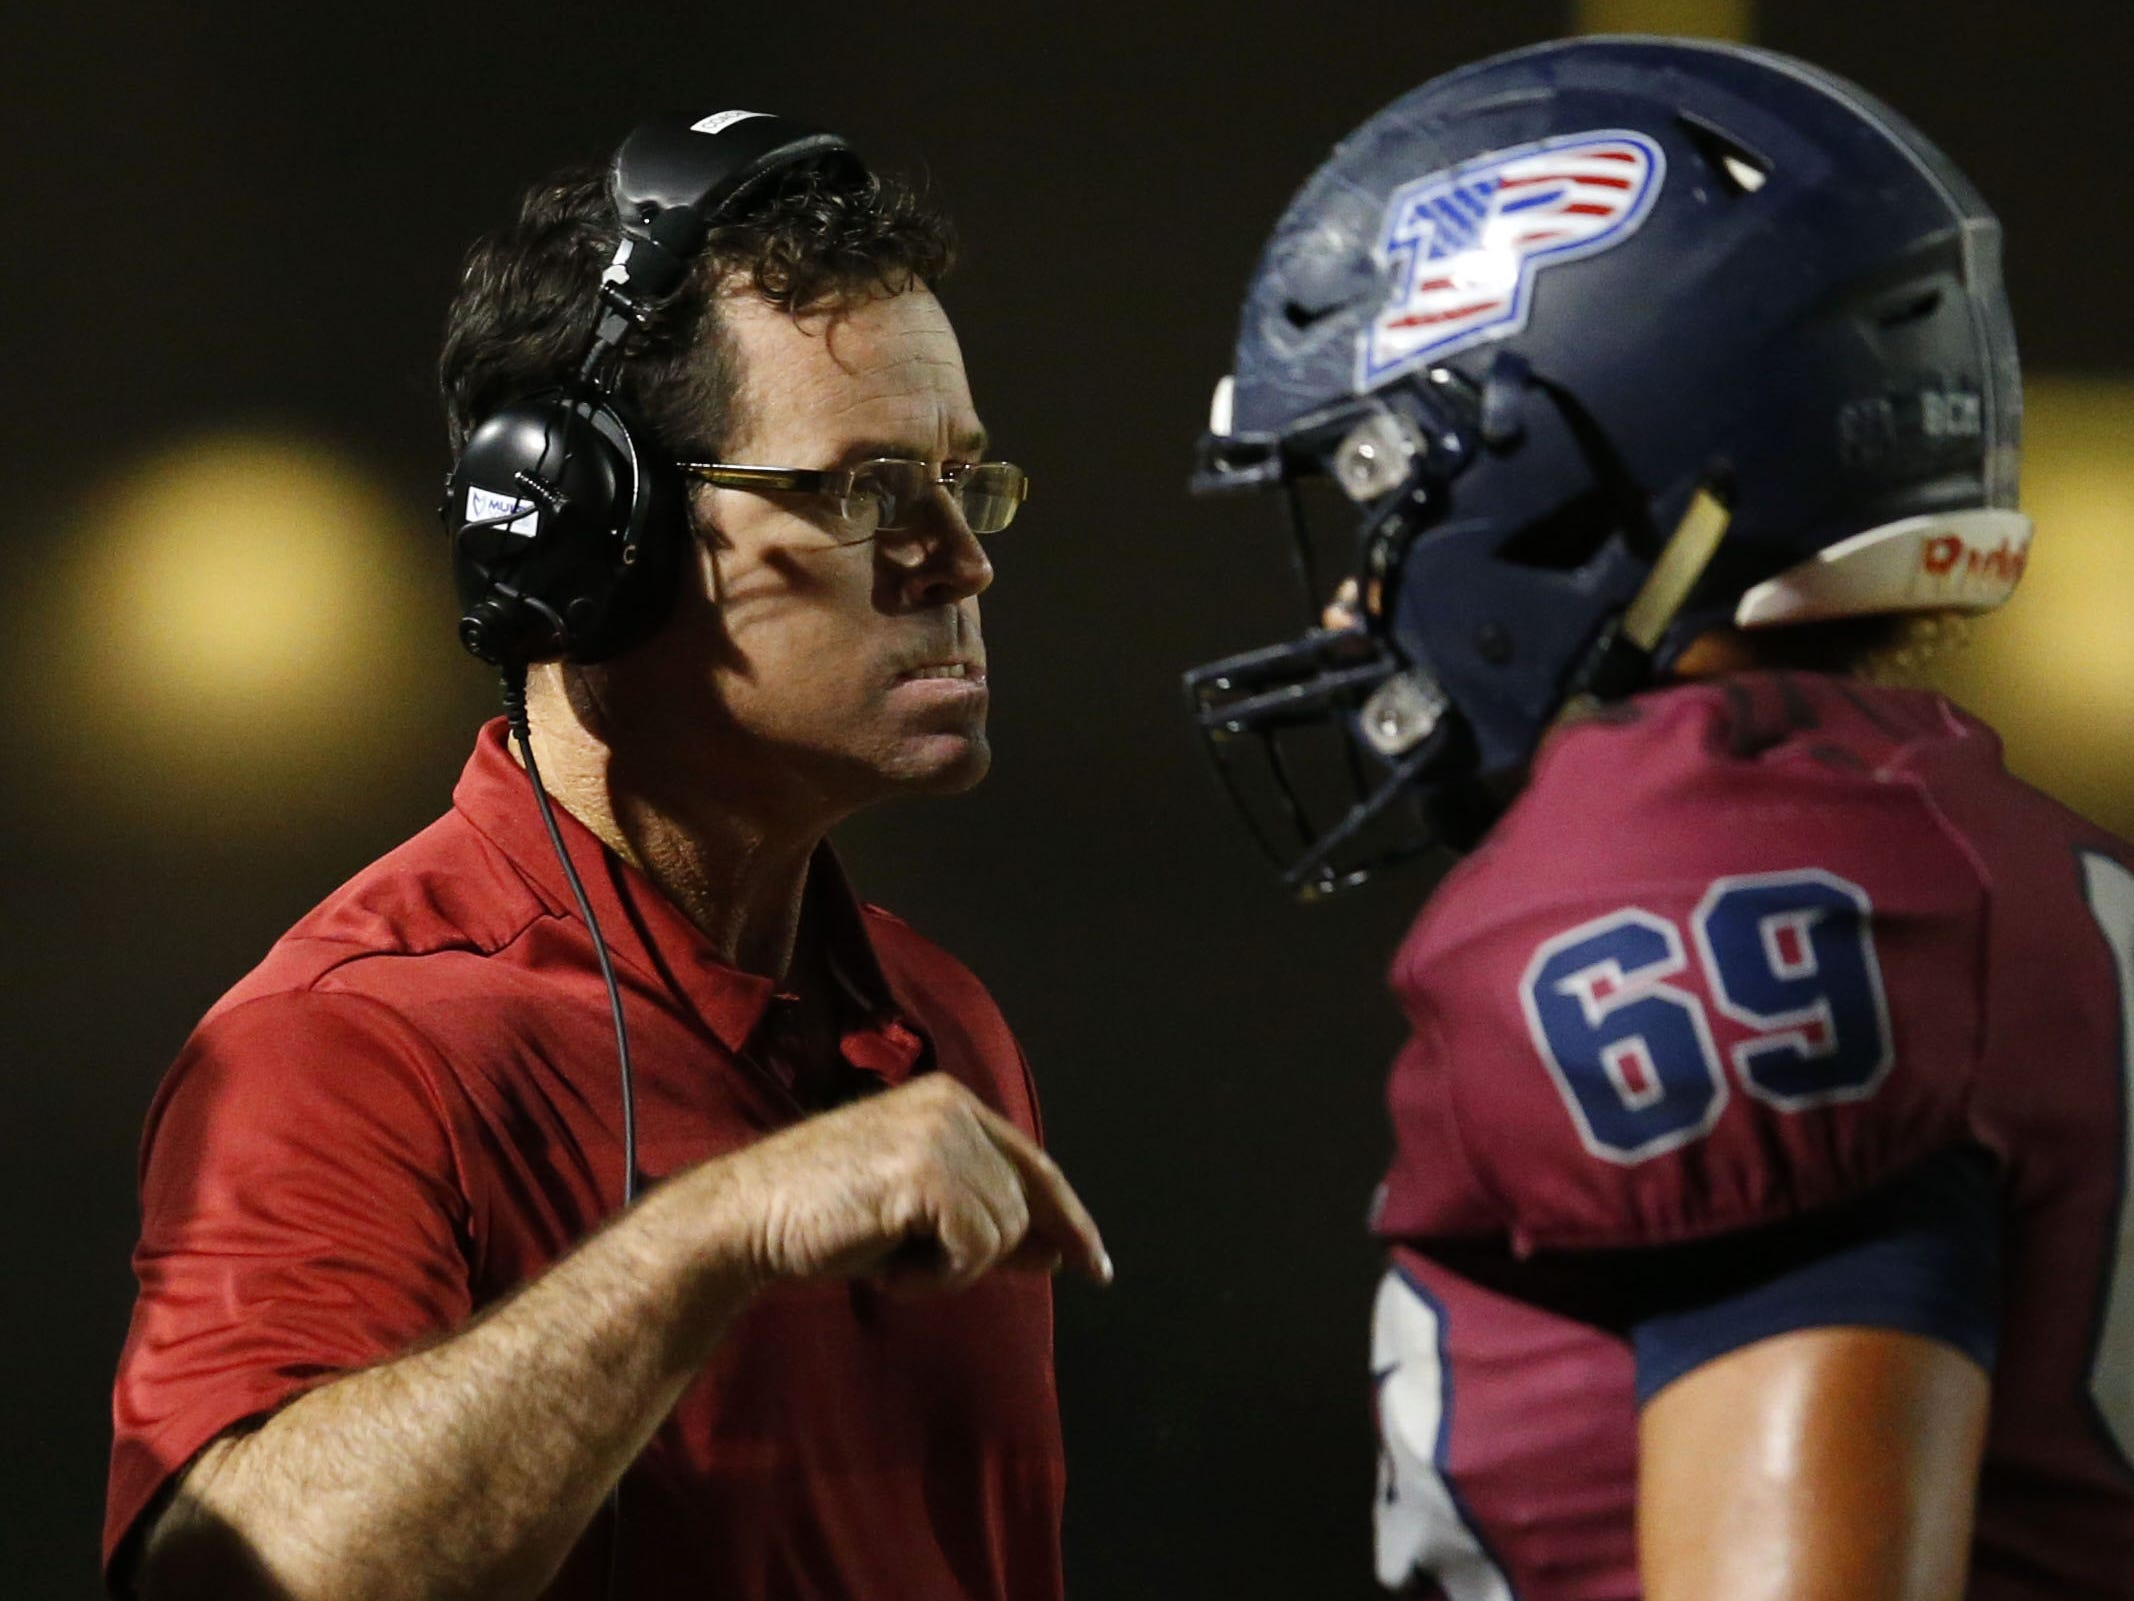 Perry head coach Preston Jones talks with Perry Hezekiah Lockhart (69) during a football game against Basha at Perry High School on November 2. #azhsfb